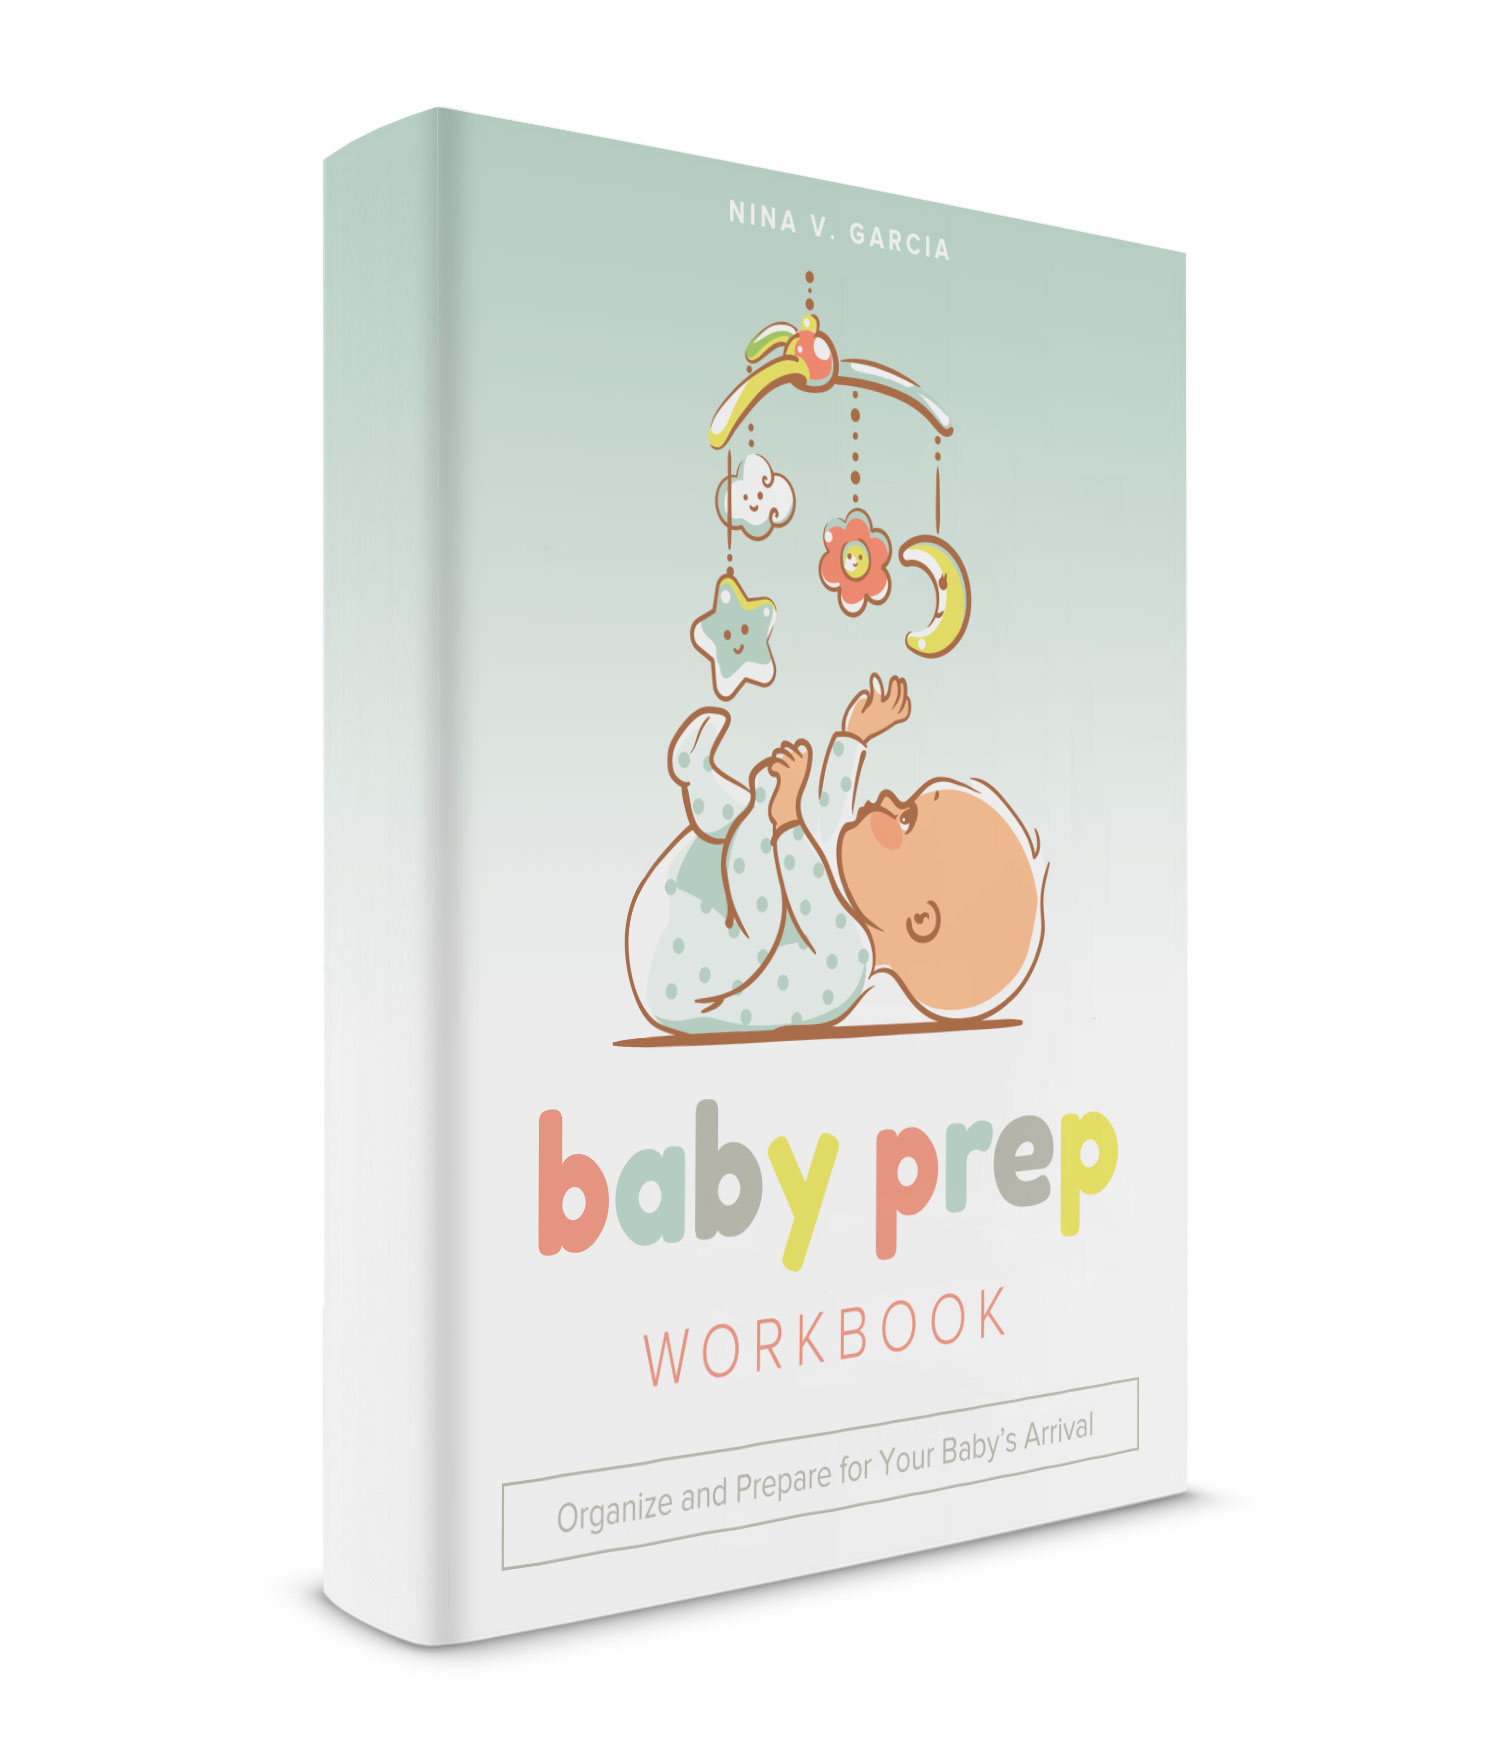 Feeling frazzled and unprepared for your baby's arrival? Check out my Baby Prep Workbook, a comprehensive printable workbook to help you organize and prepare for your baby. Get it right here!